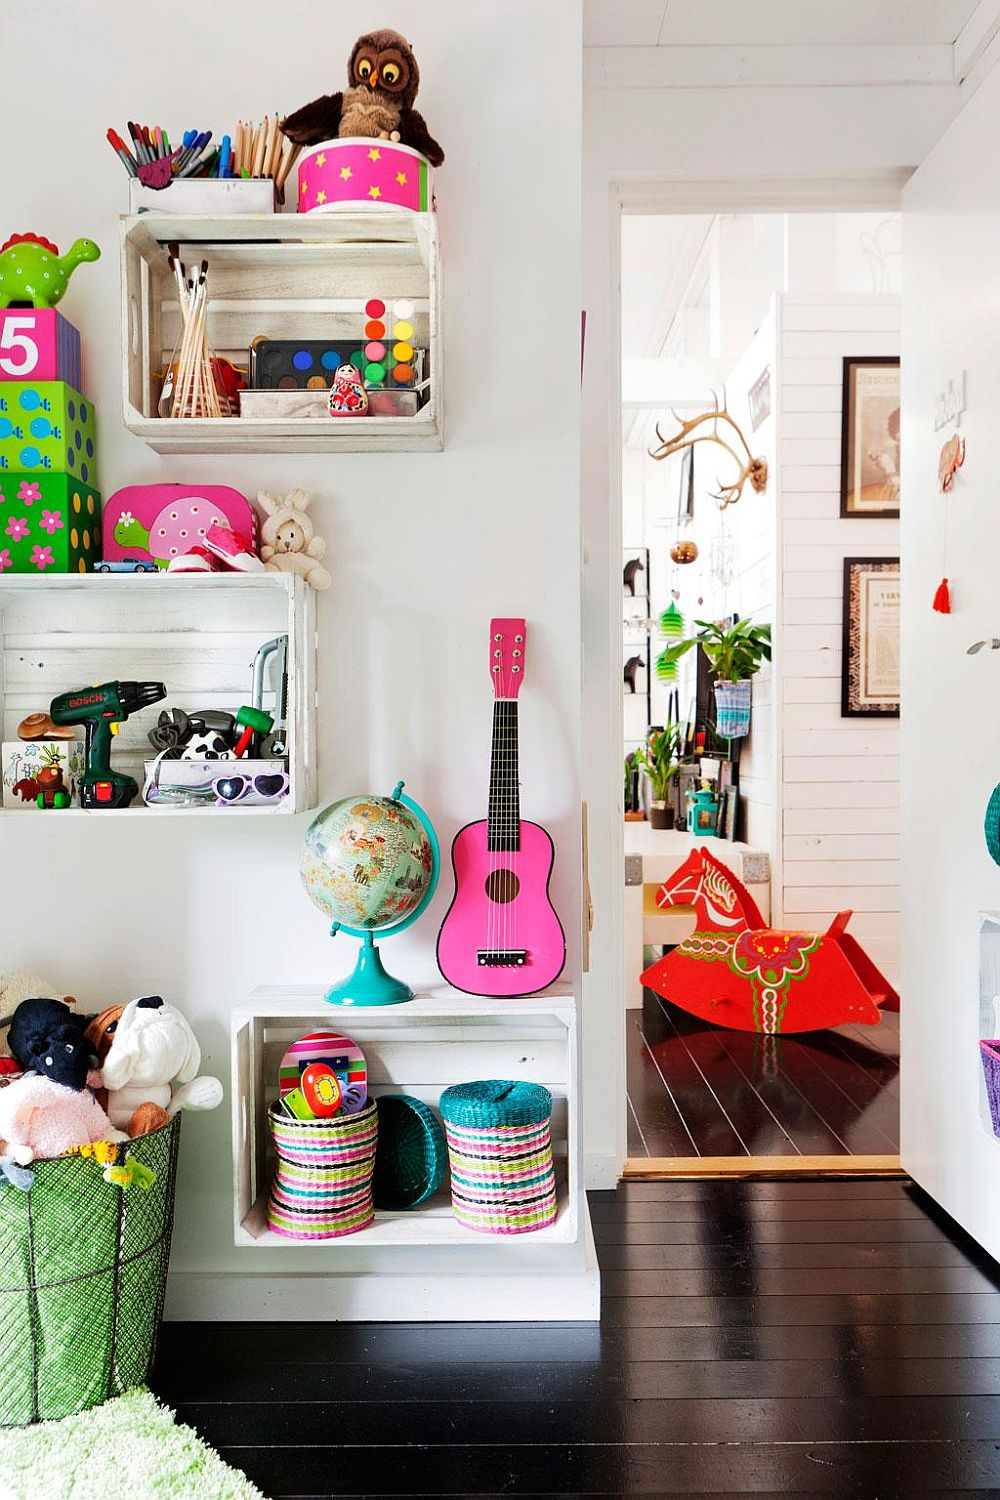 Kids Room Storage Ideas 7 Ingenious Storage Ideas For Kids Rooms Spaceoptimized